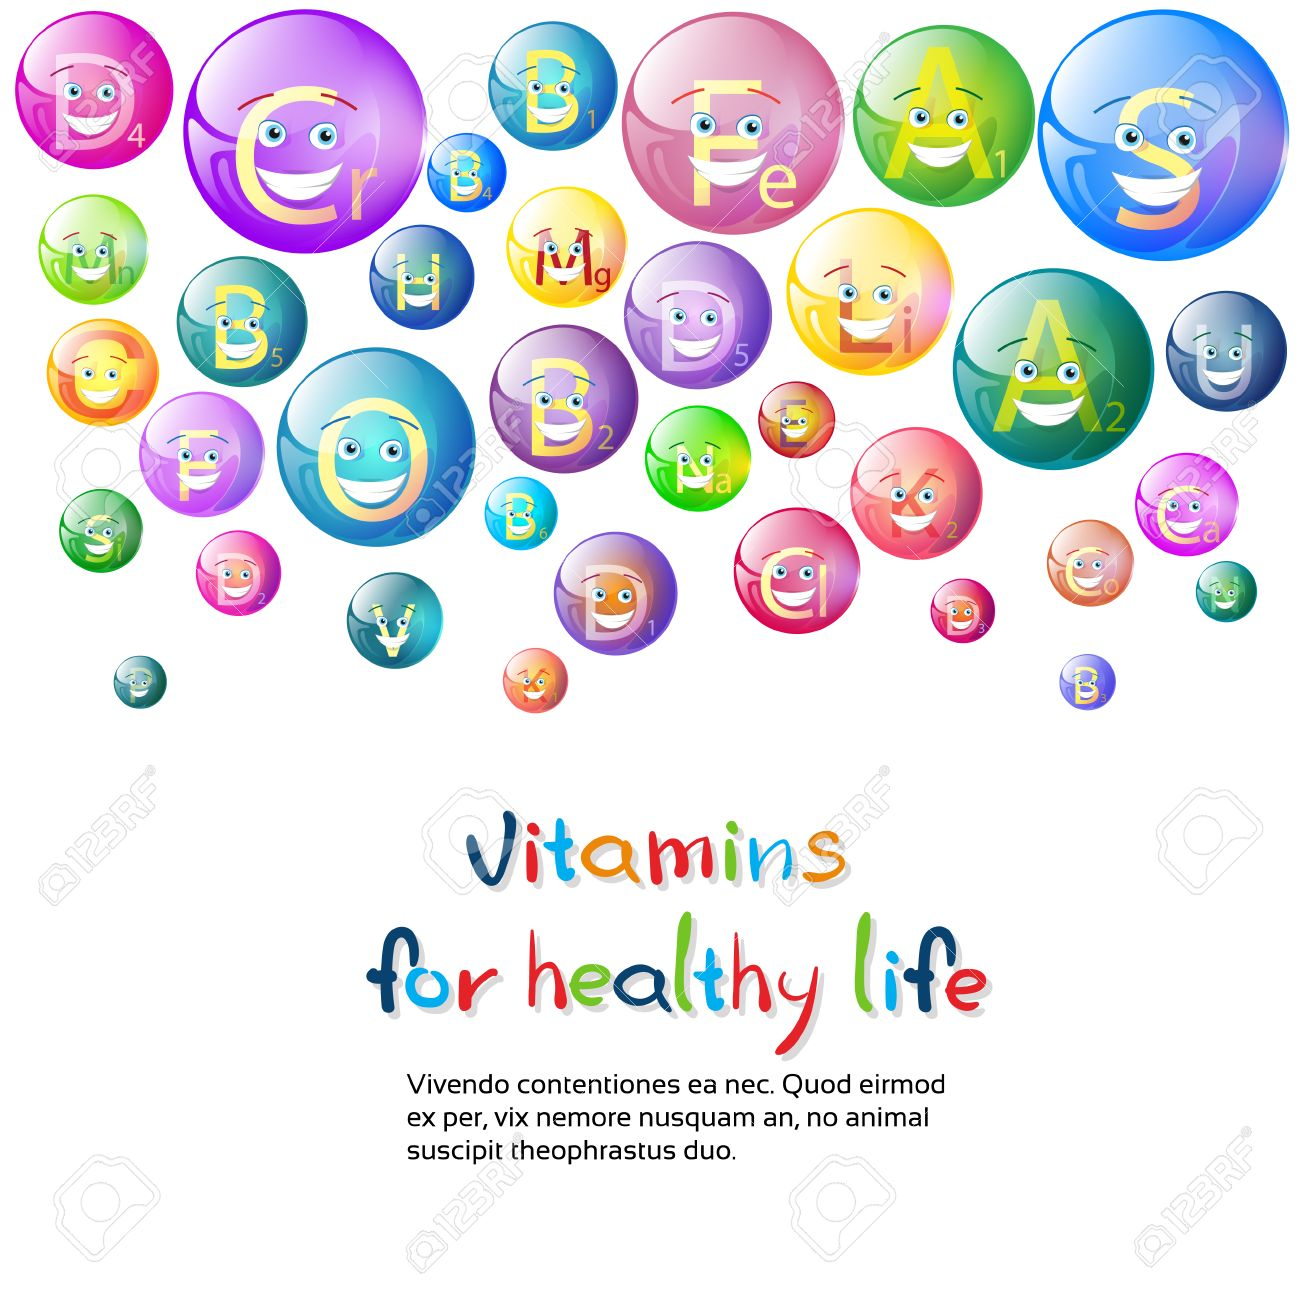 Vitamins Nutrient Minerals Colorful Banner Healthy Life Nutrition.